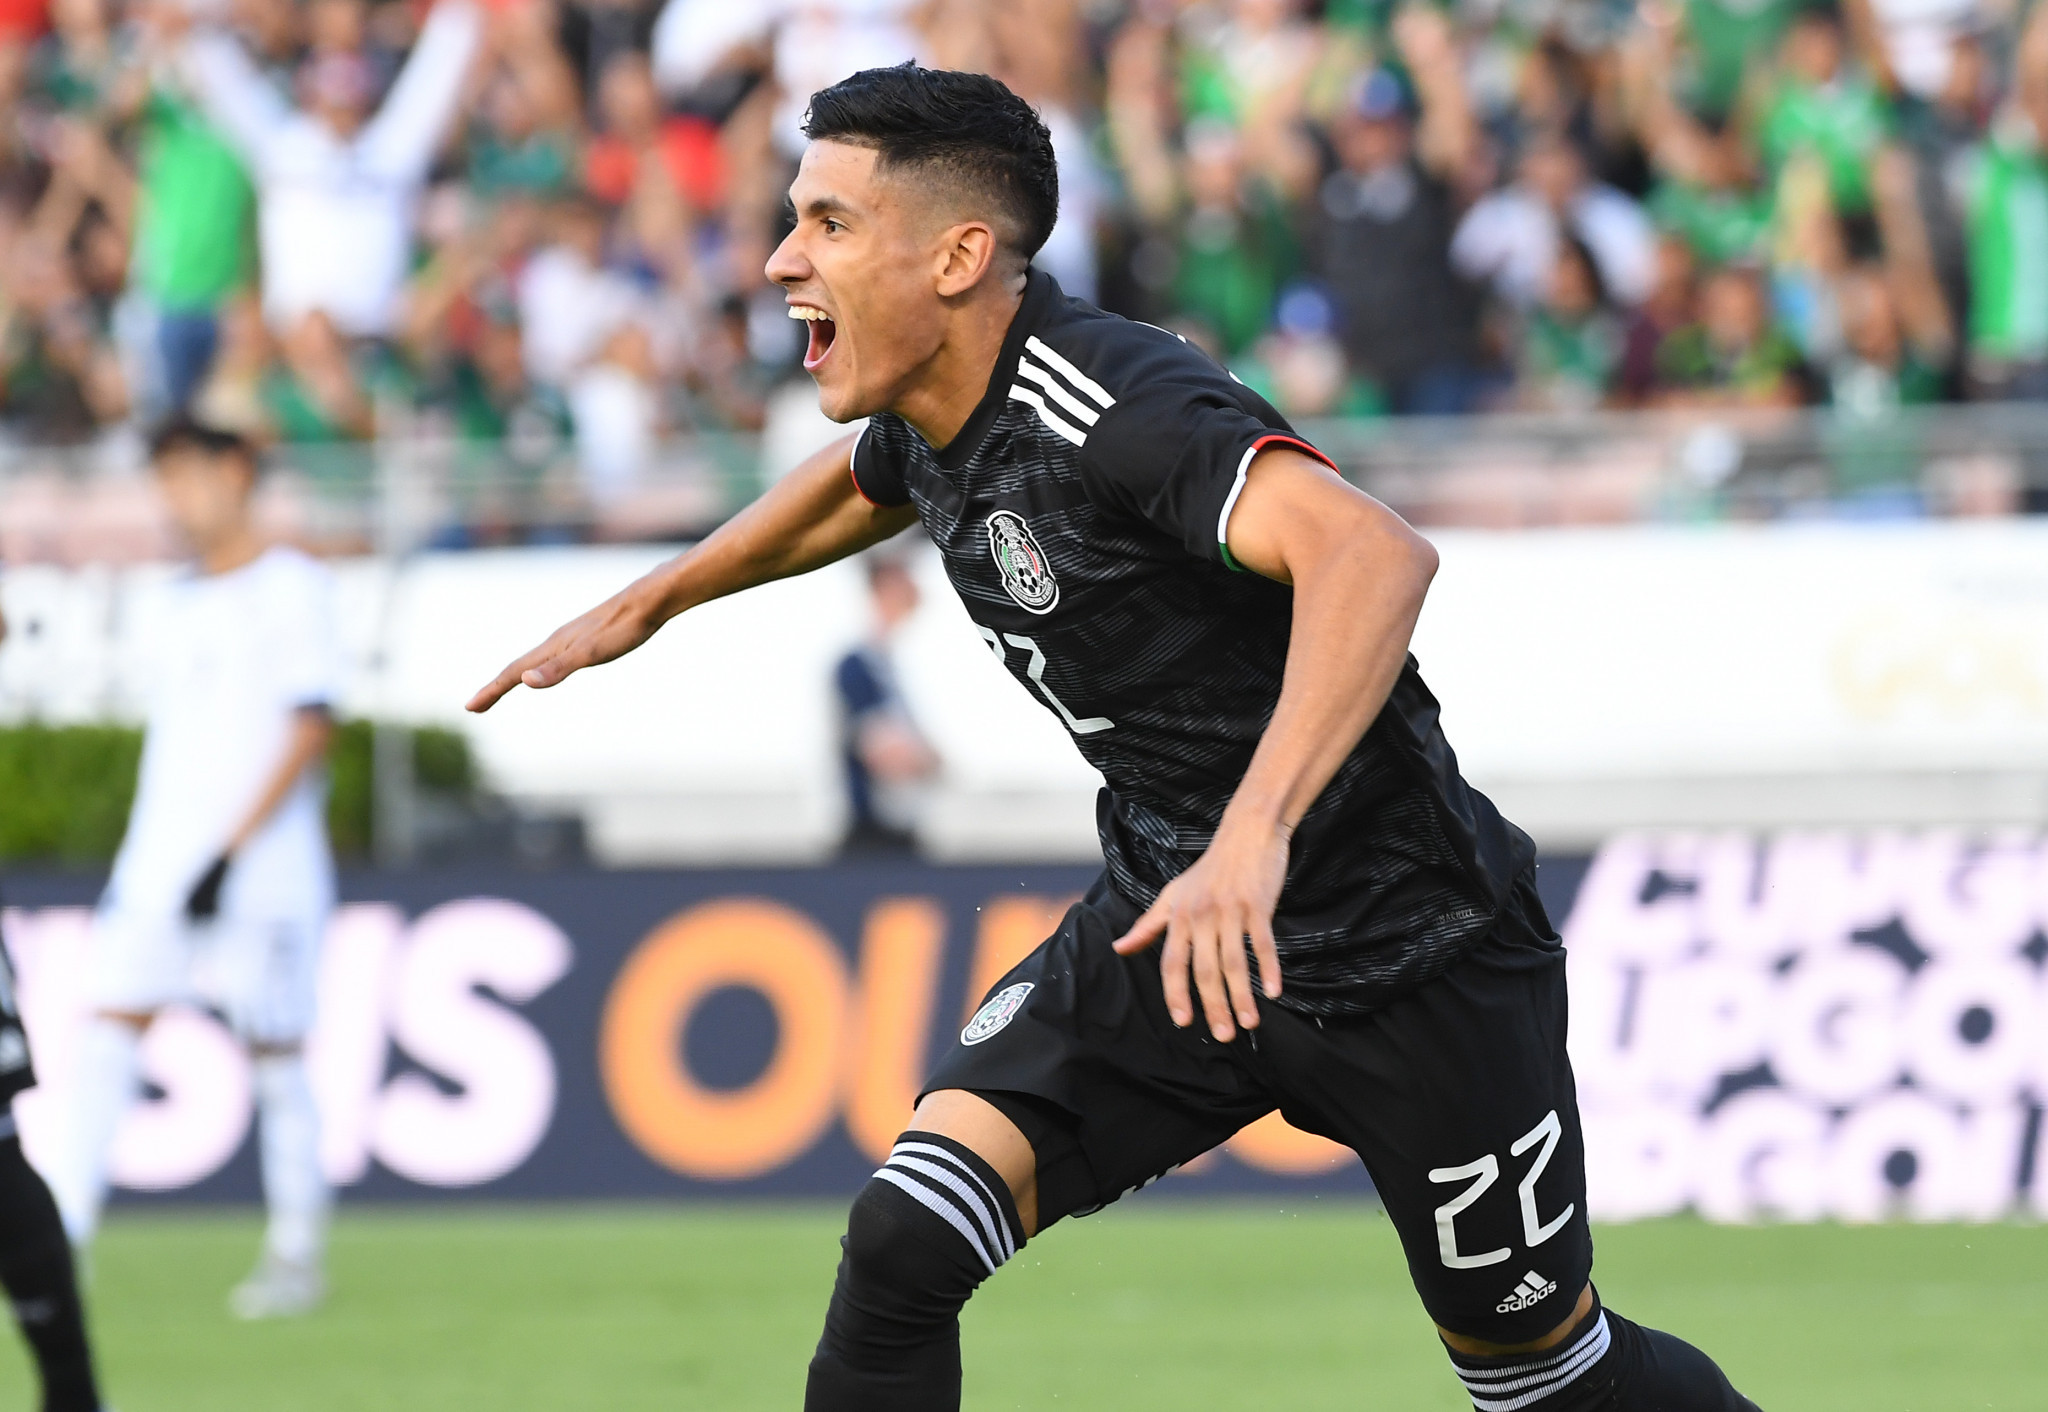 Uriel Antuna scored a hat-trick for Mexico as the Gold Cup opened ©Getty Images